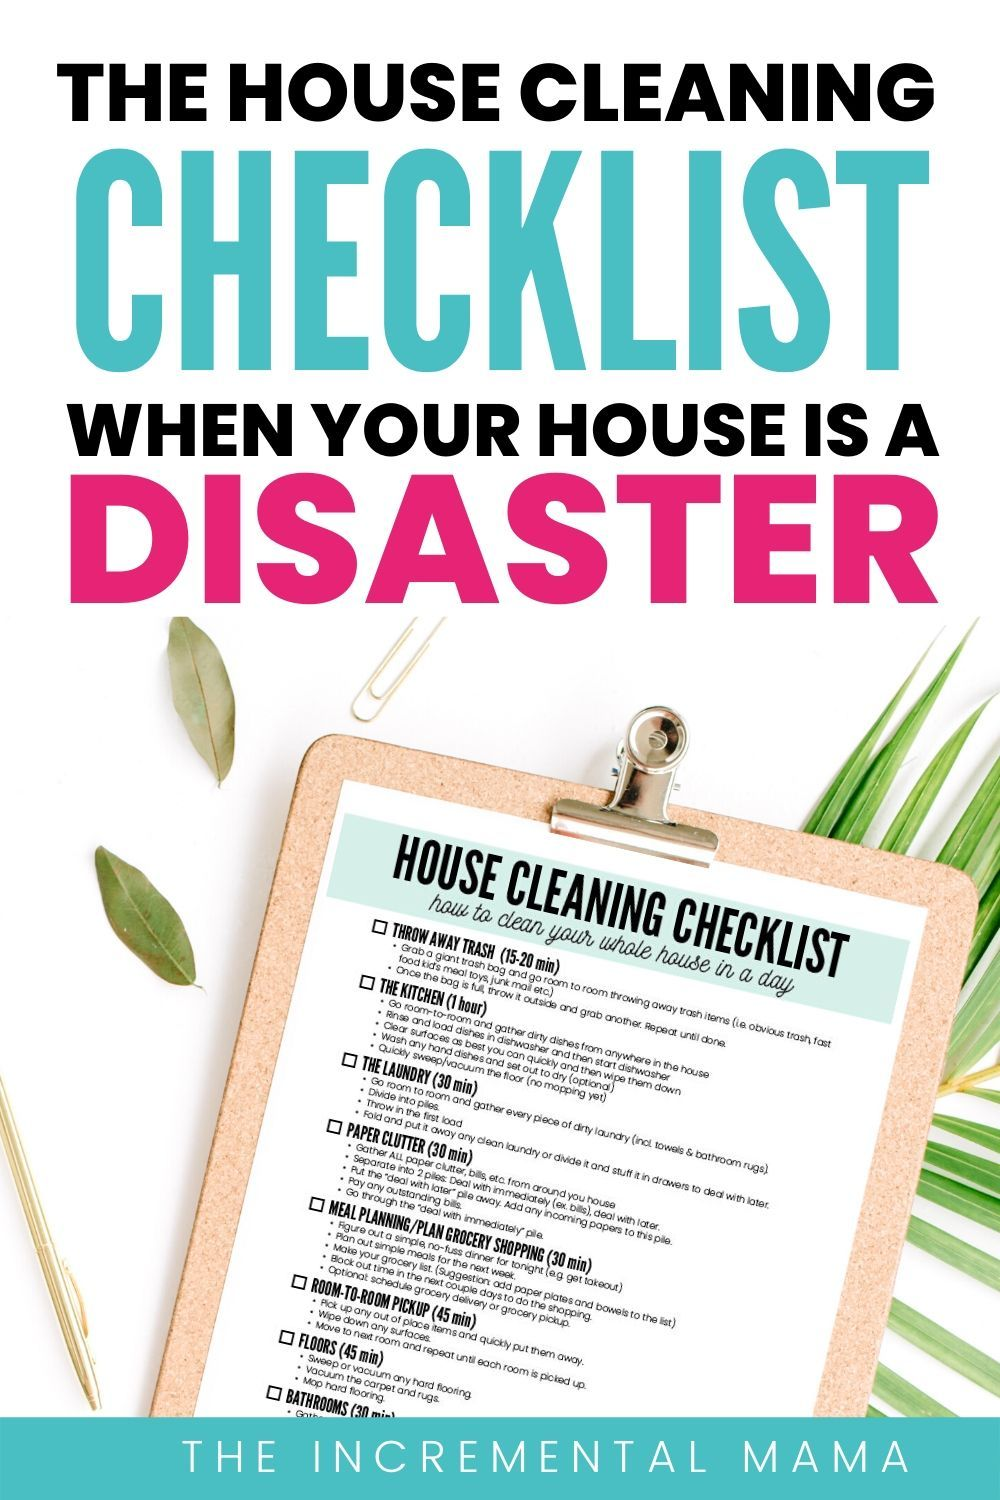 Free Printable House Cleaning Checklist When Your House Is A Messy Disaster In 2020 Clean House House Cleaning Checklist Cleaning Checklist